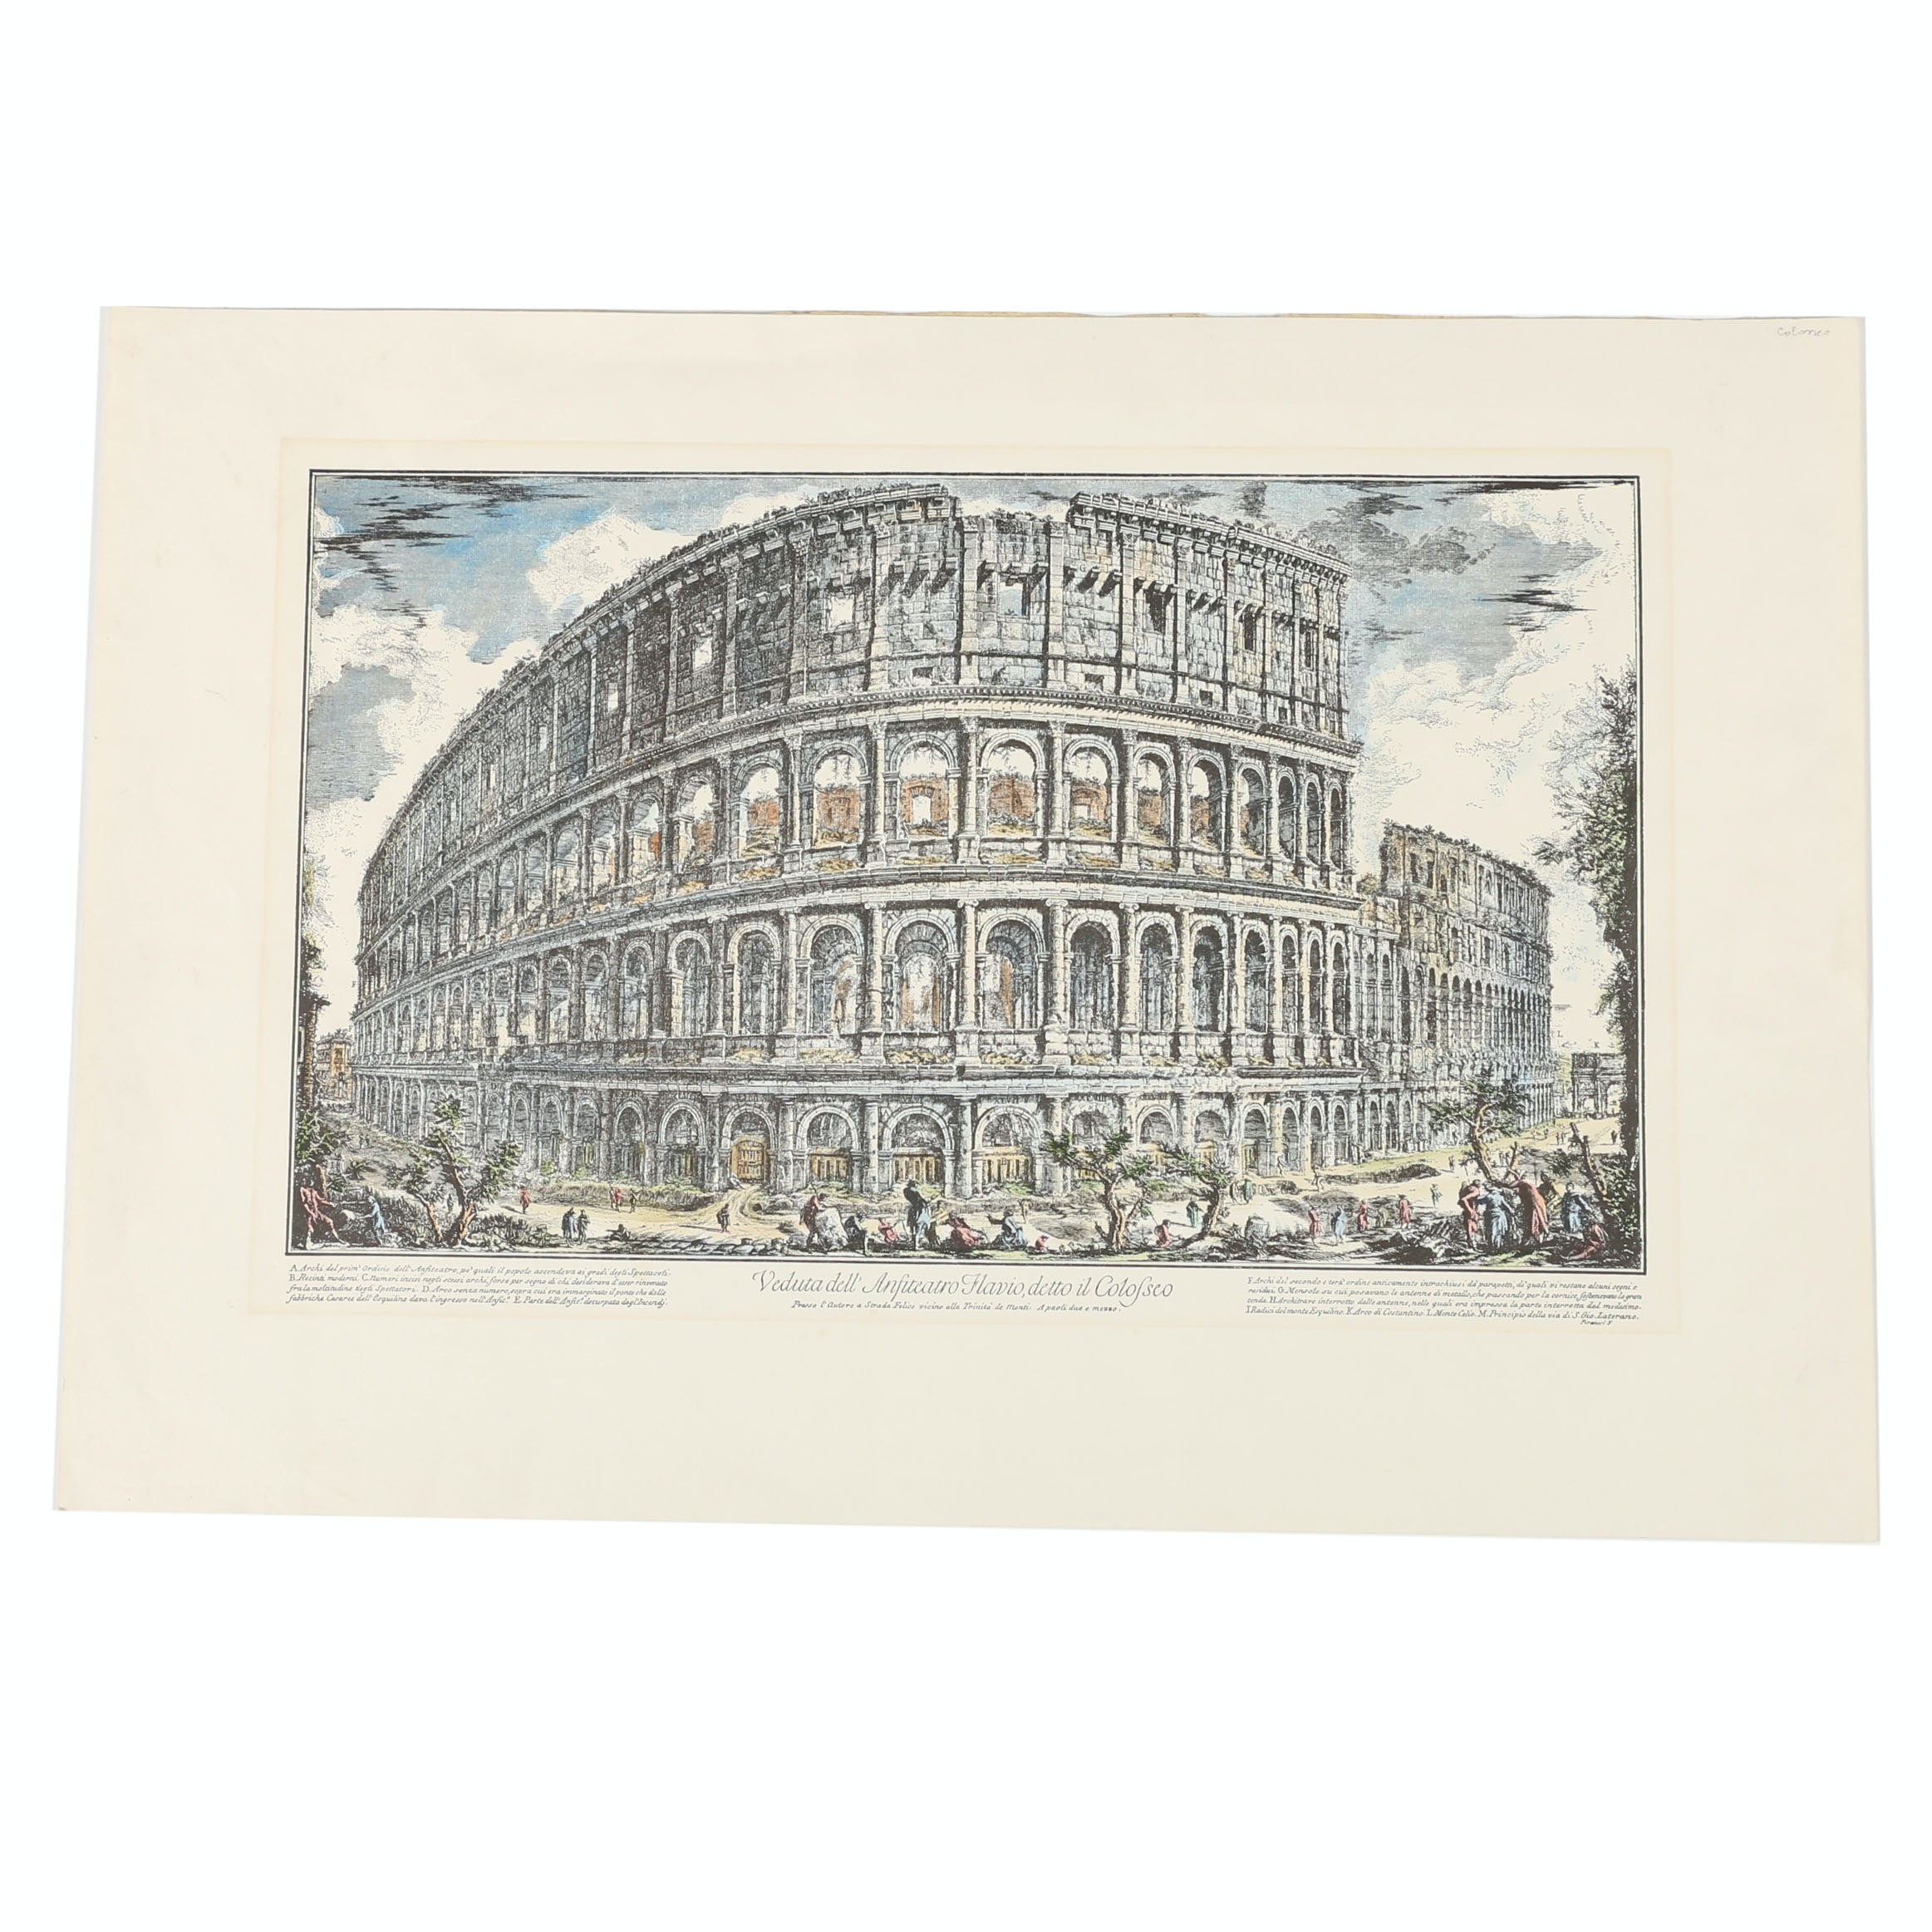 Hand-Colored Lithograph after a Giovanni Piranesi Etching of the Colosseum